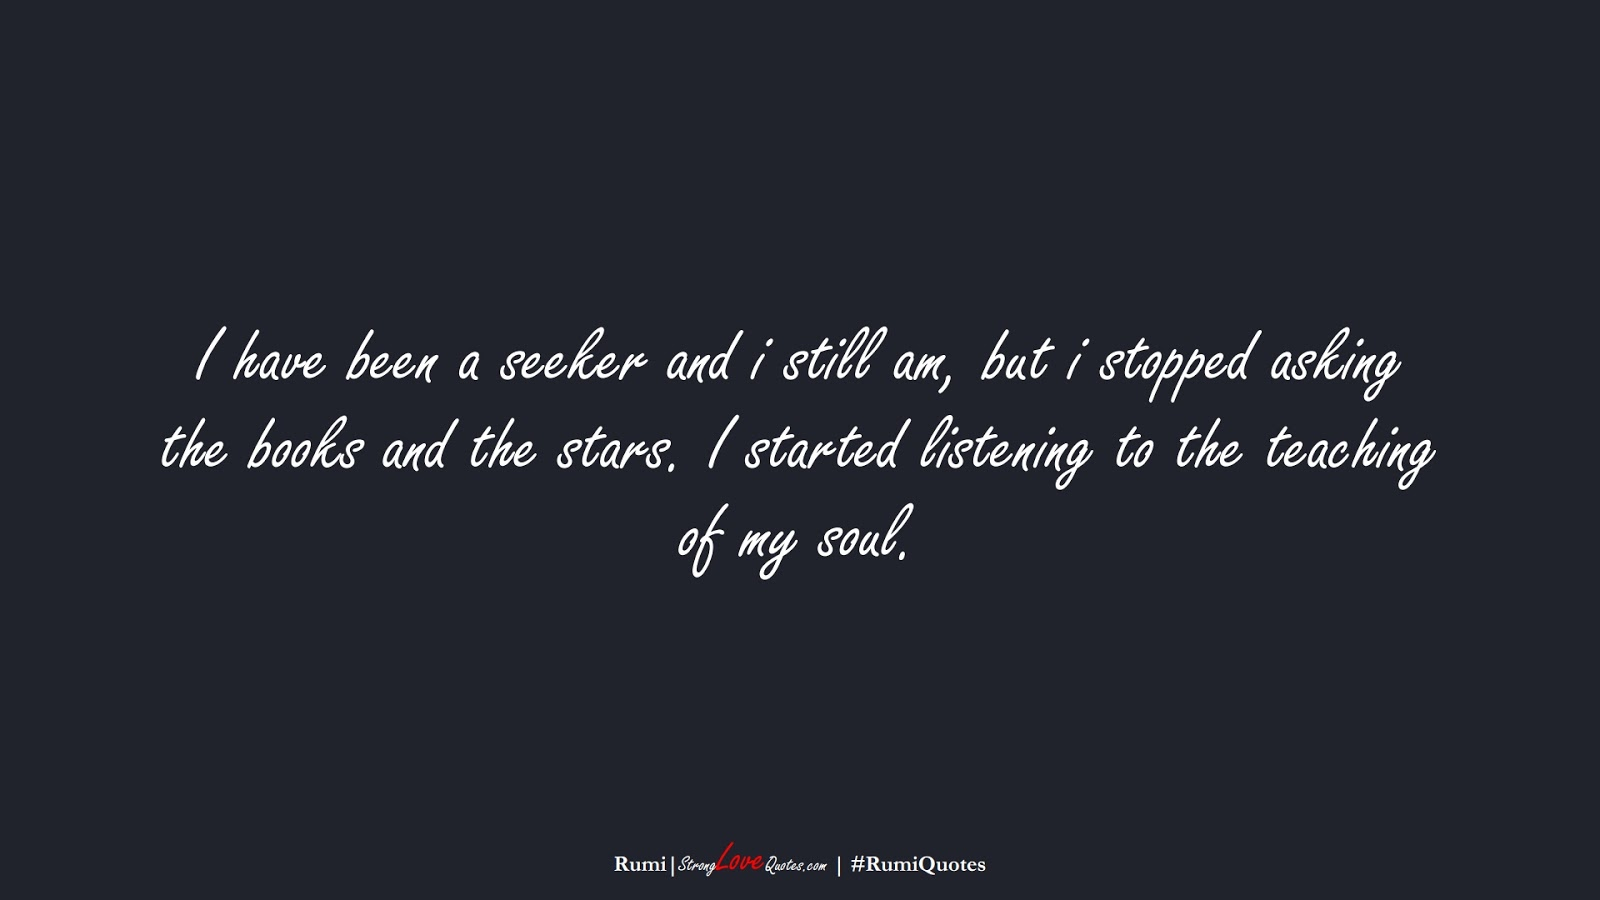 I have been a seeker and i still am, but i stopped asking the books and the stars. I started listening to the teaching of my soul. (Rumi);  #RumiQuotes